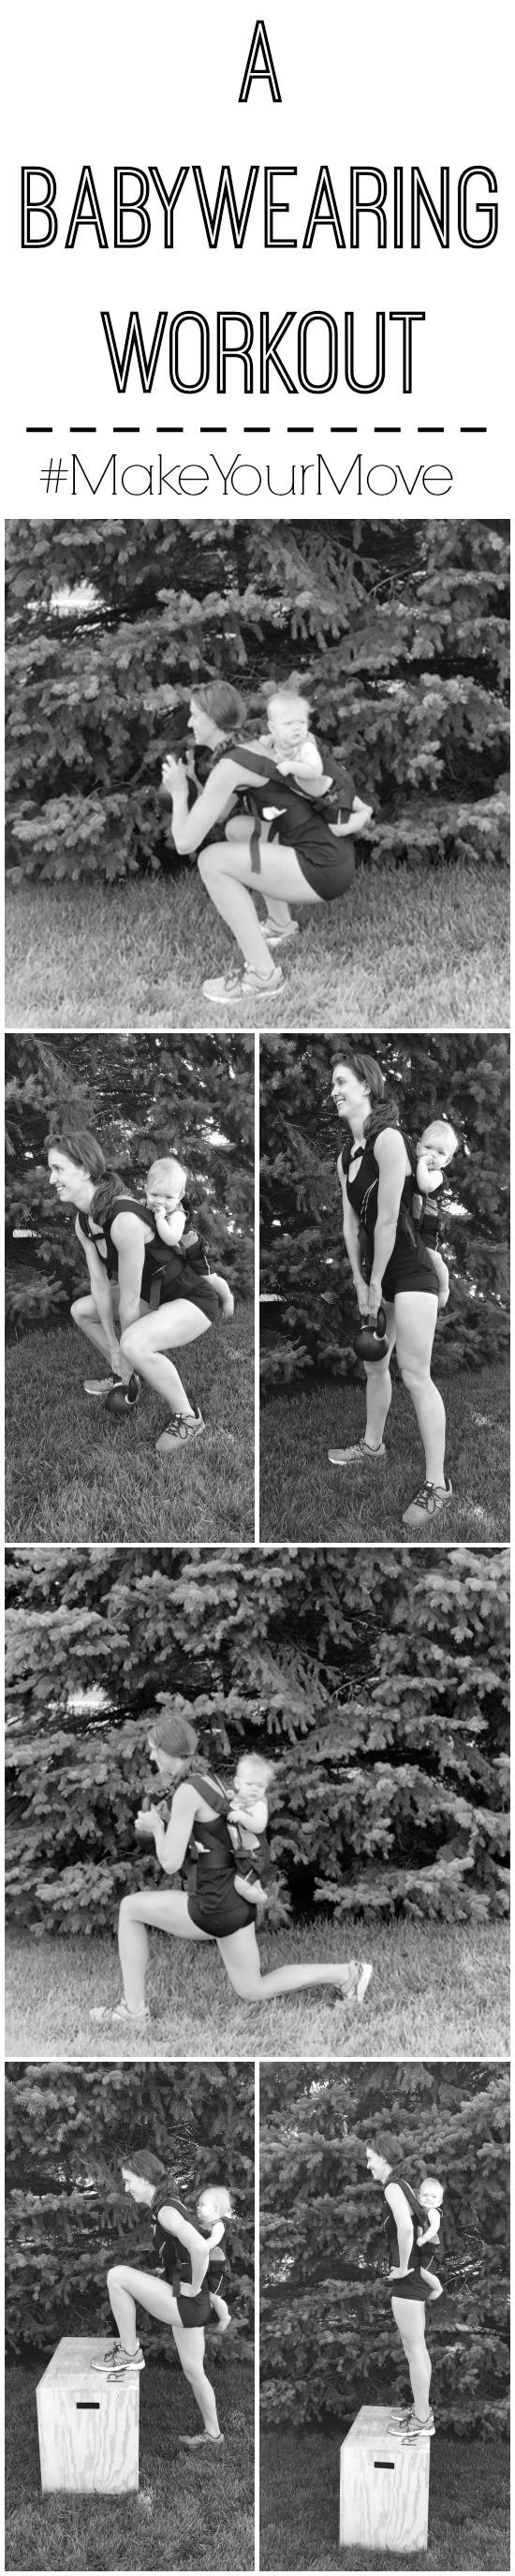 A babywearing workout that targets the lower body and can be done at home while wearing your baby.